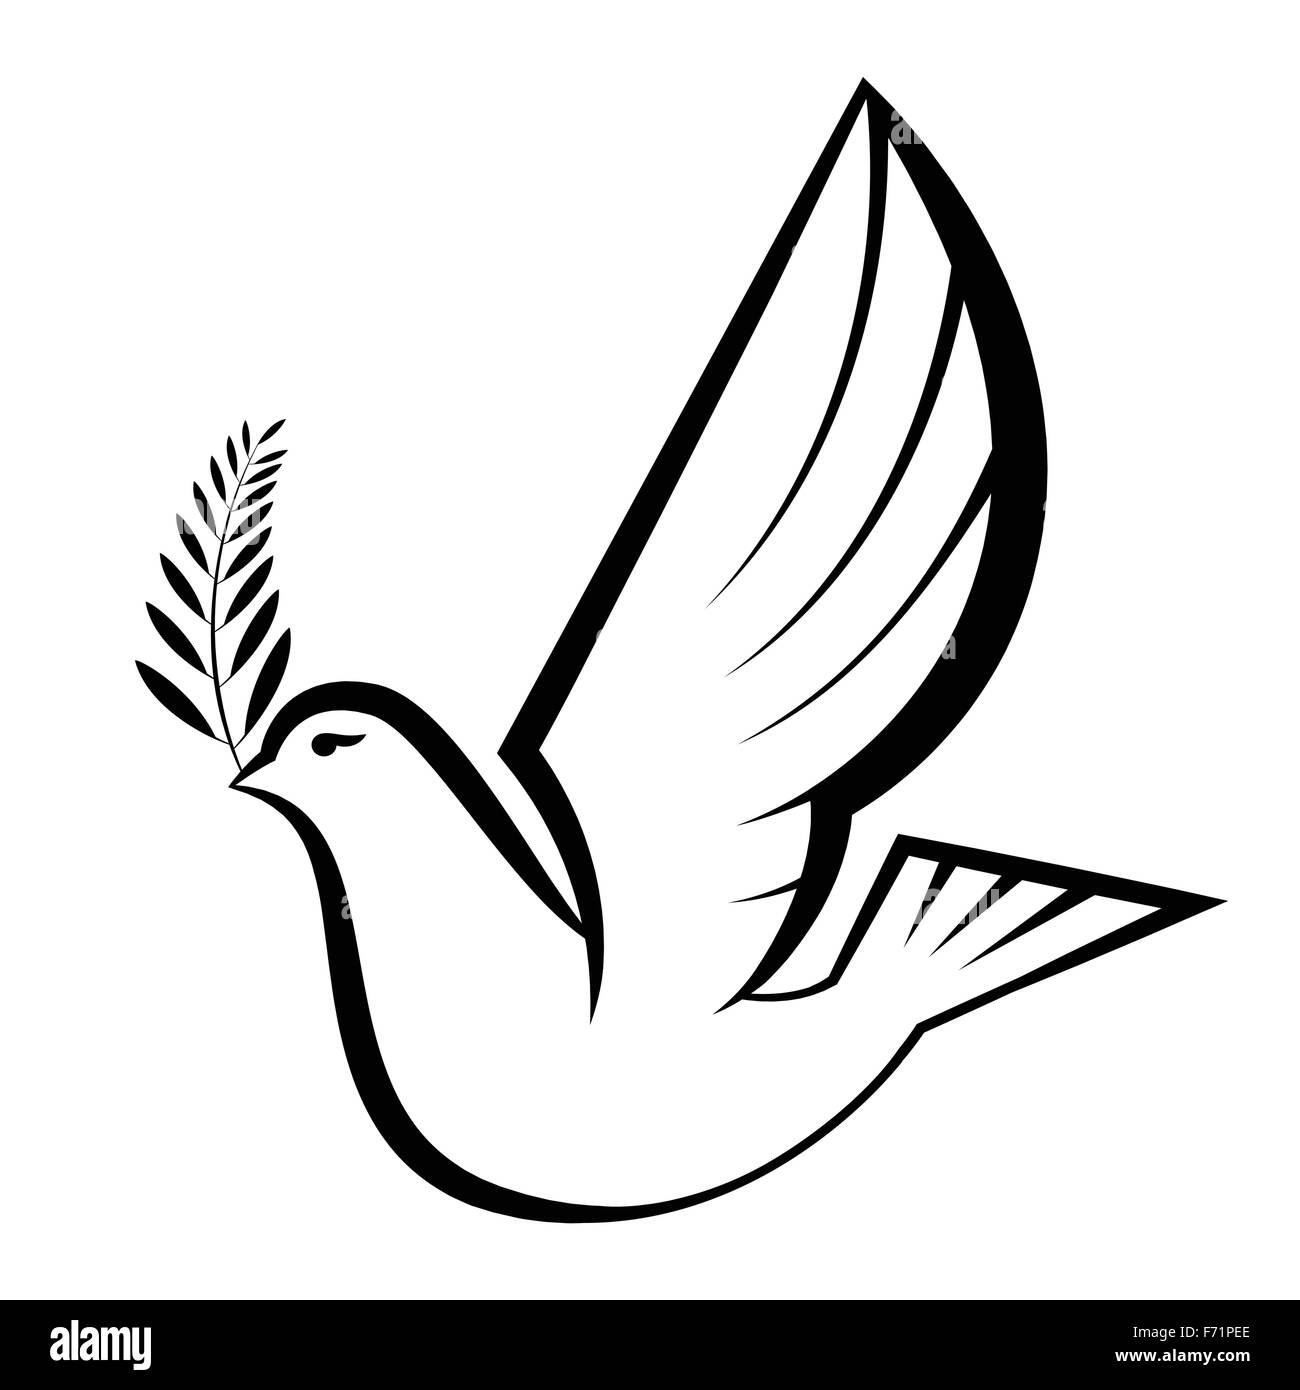 Peace dove stock photos peace dove stock images alamy simple illustration of peace dove carrying olive branch stock image biocorpaavc Image collections